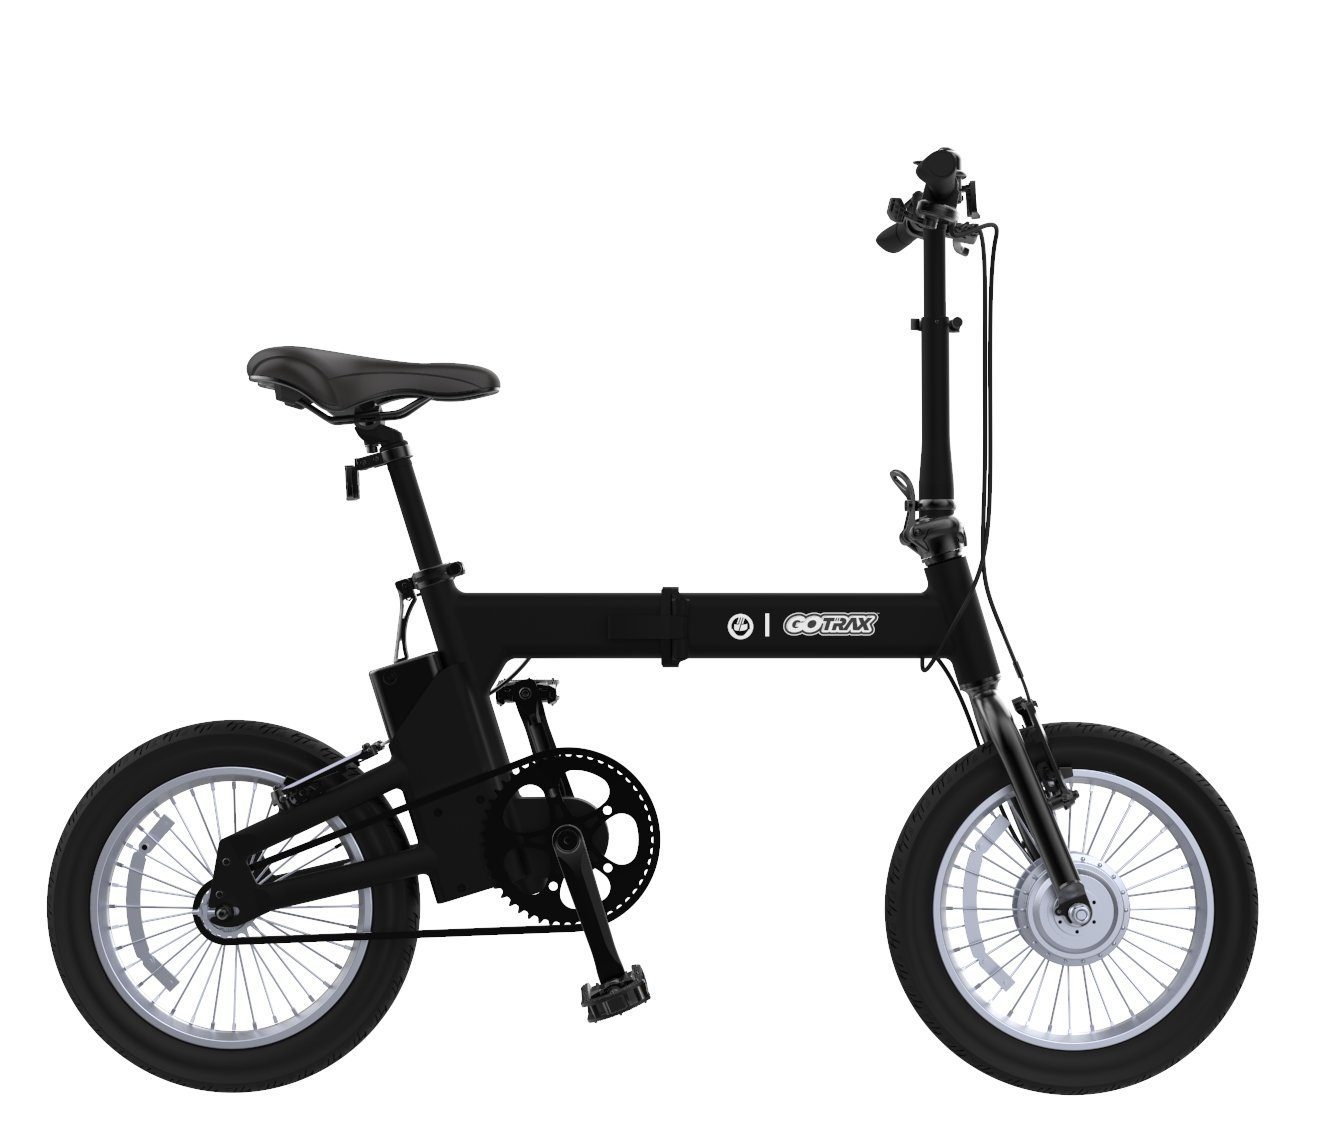 Gotrax Shift S1 electric bike for commuting